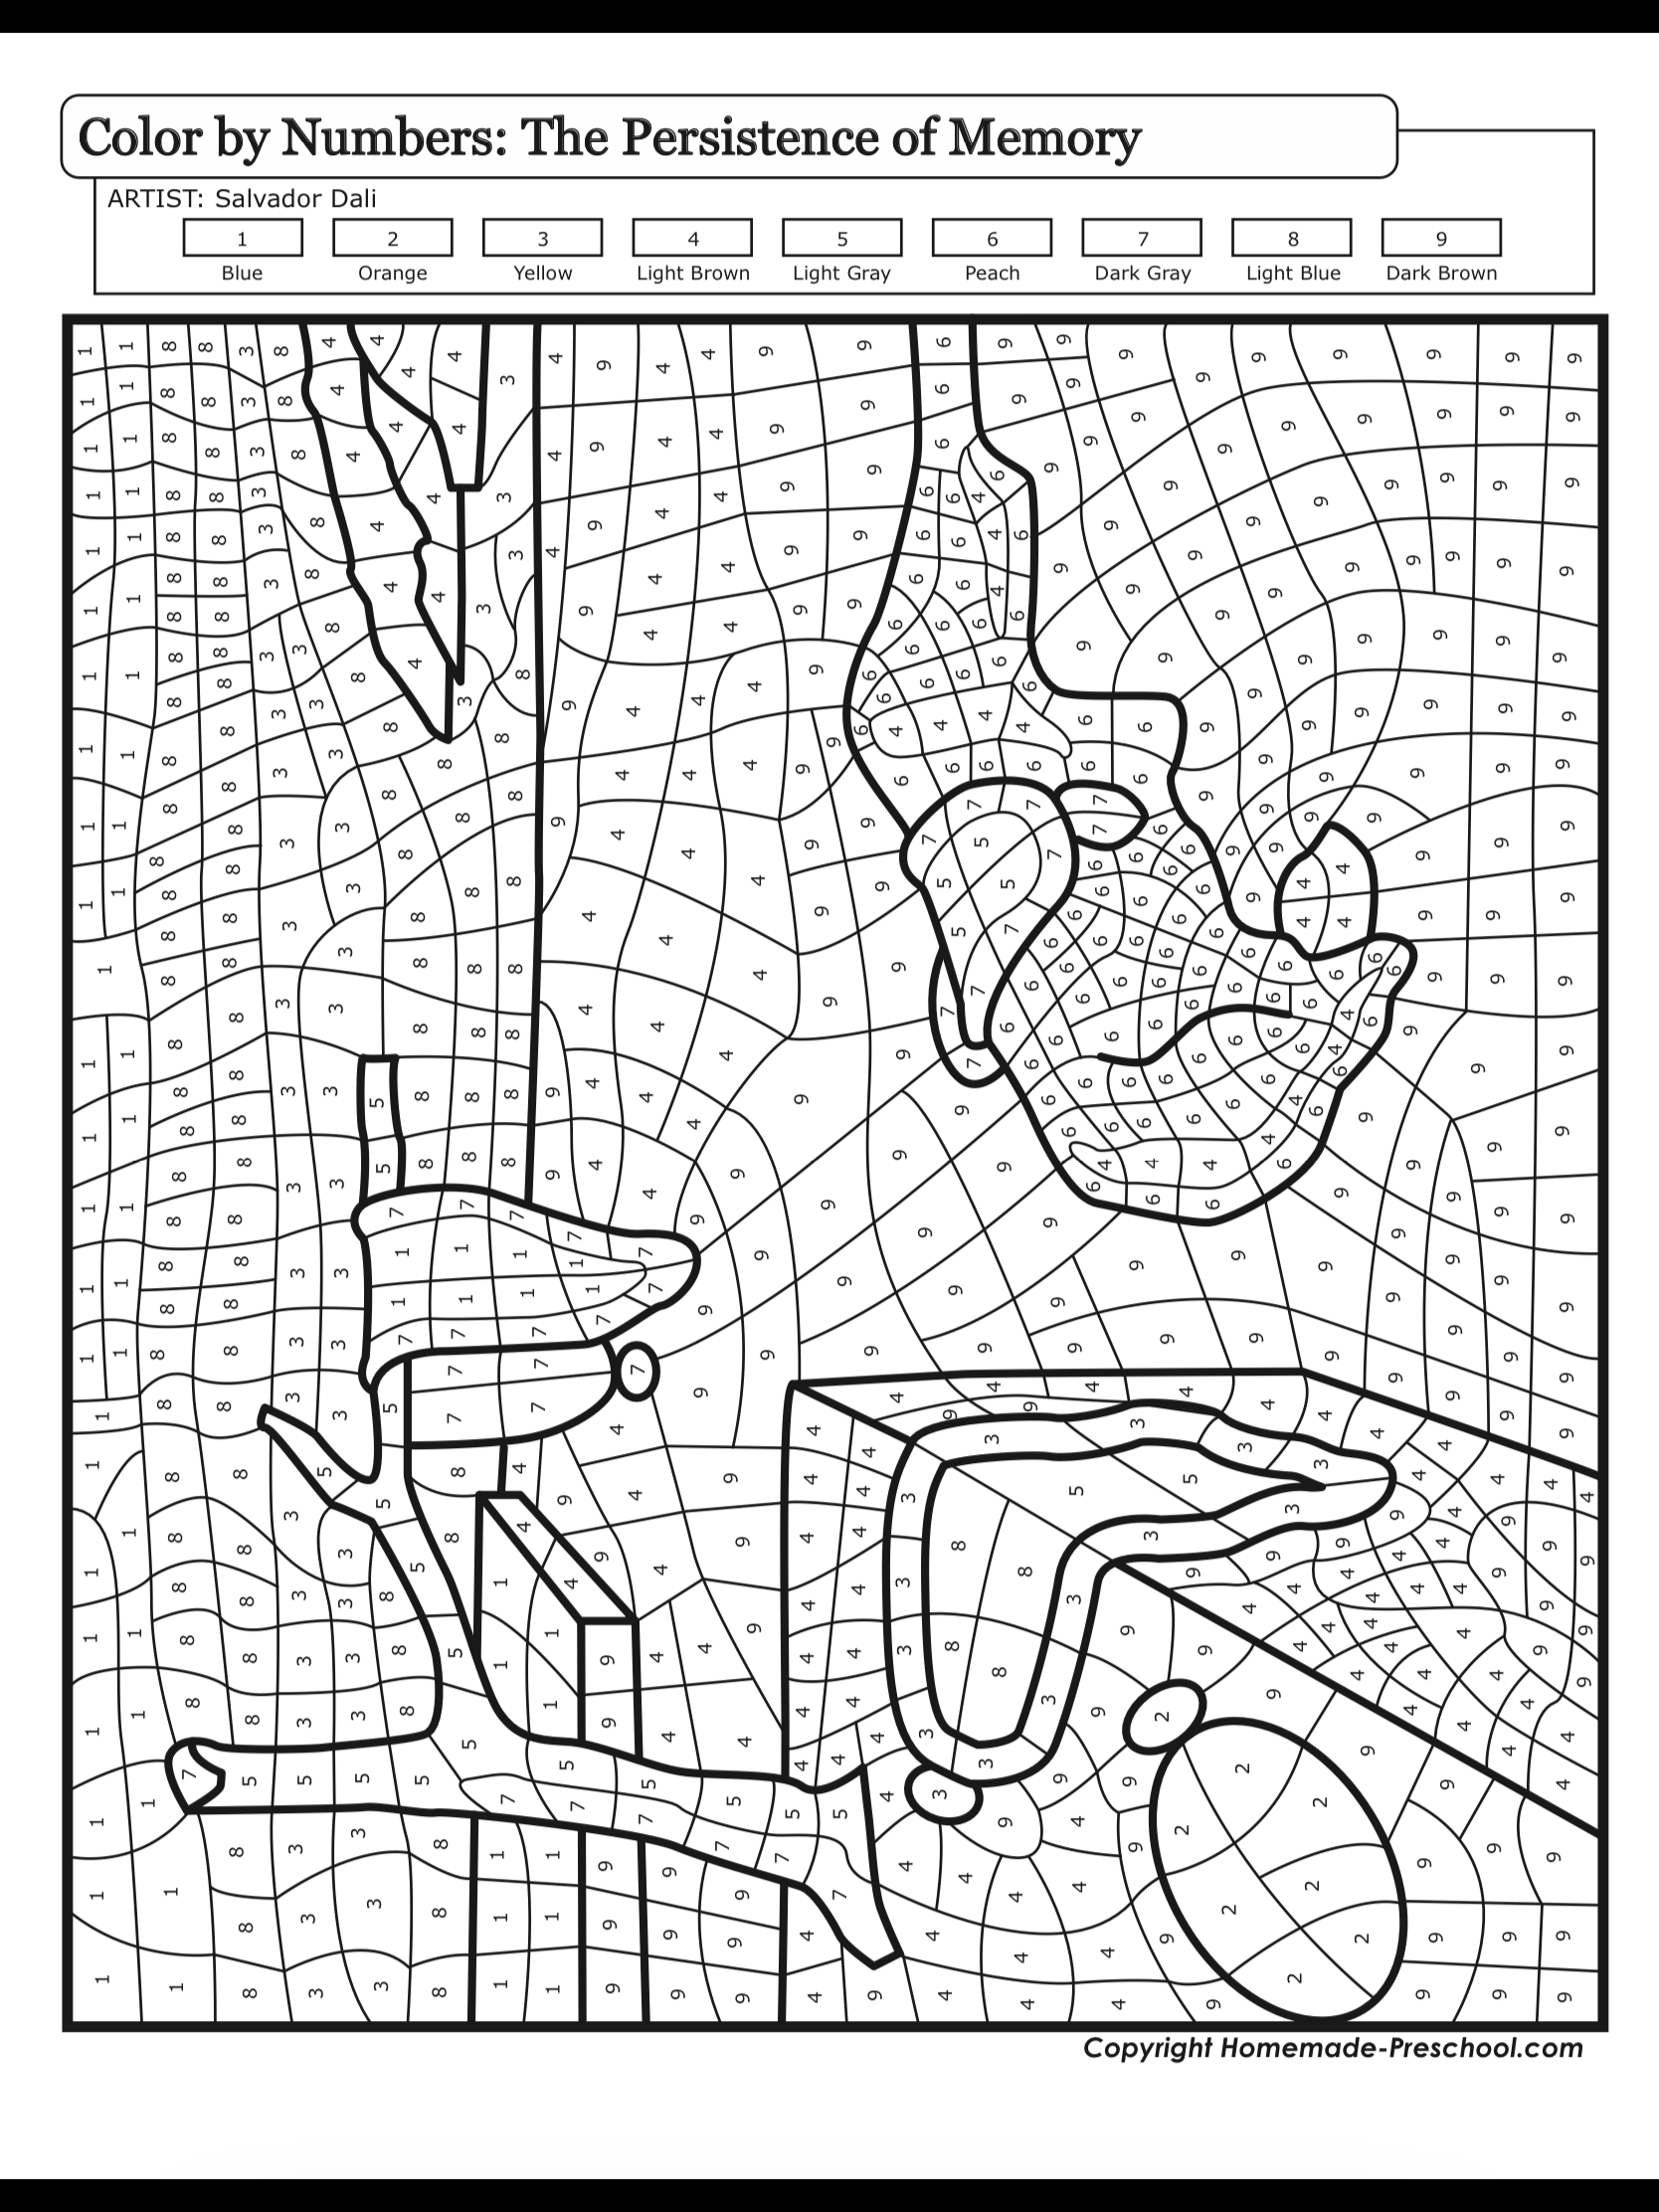 Paintbynumbers Salvadordali Thepersistenceofmemory Famous Art Coloring Color Theory Art Abstract Coloring Pages